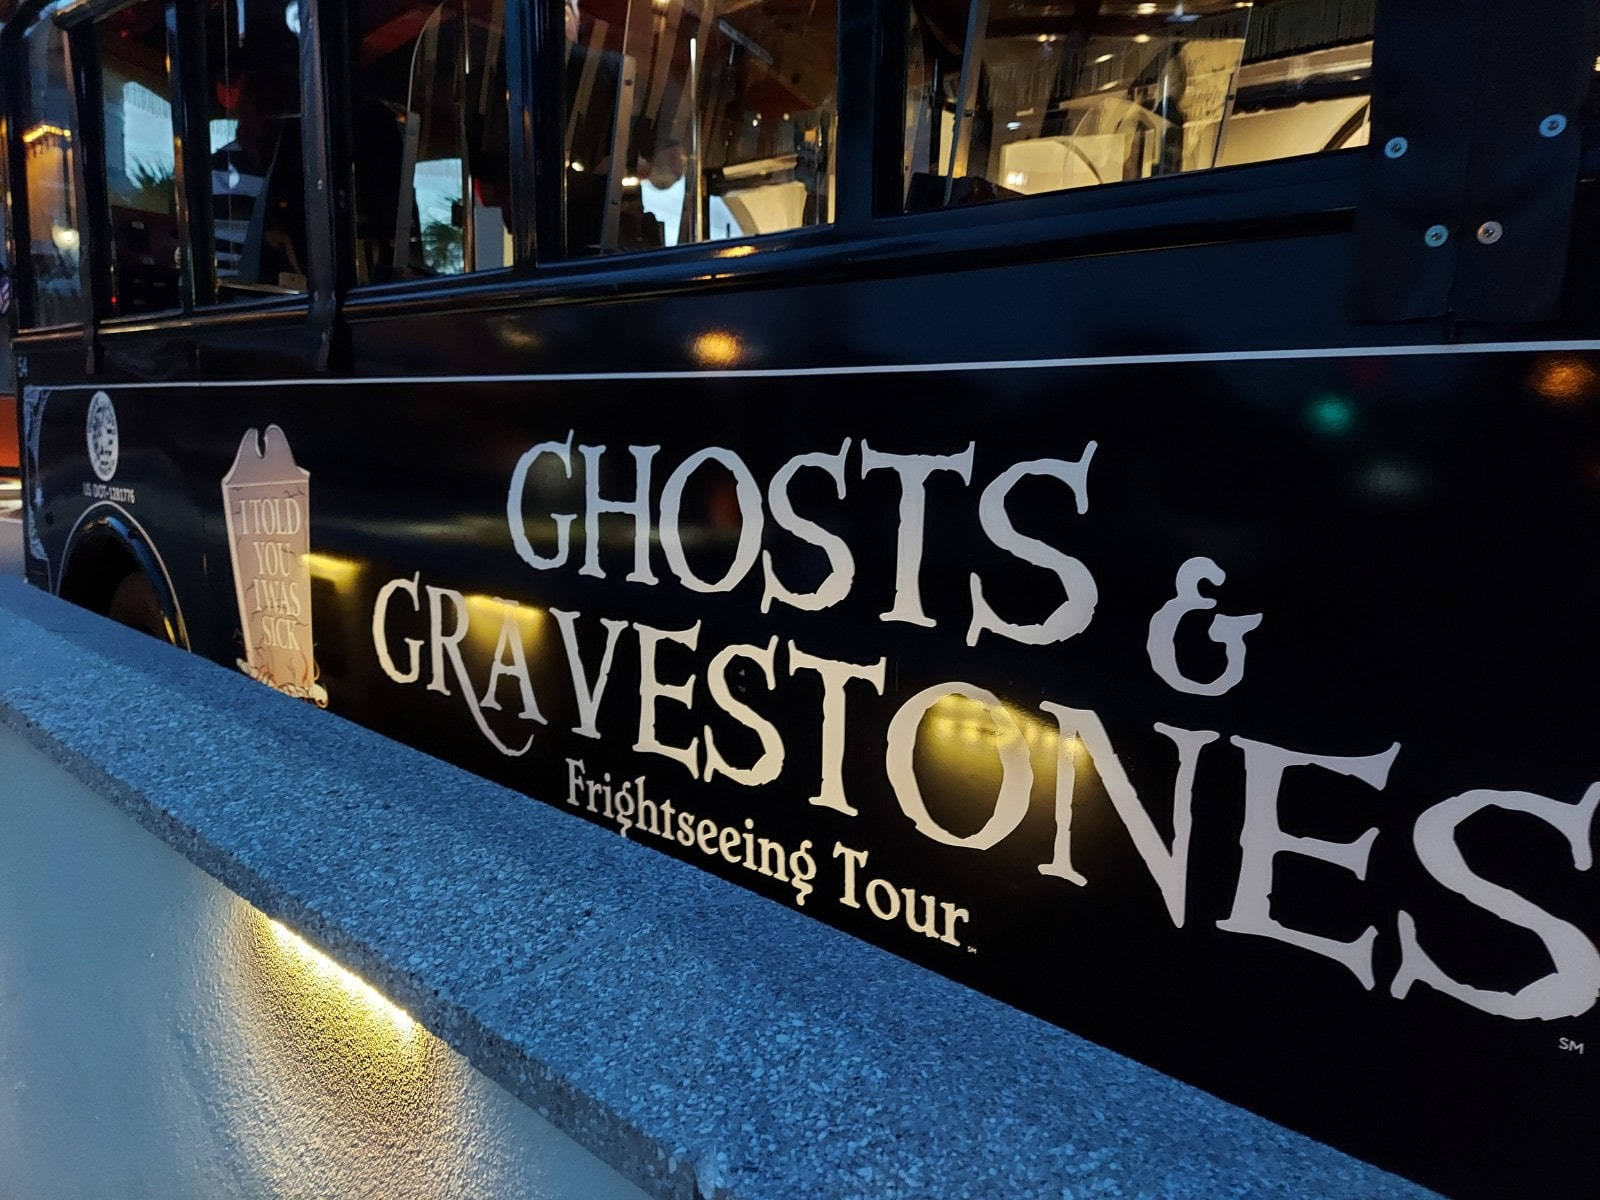 Ghosts and Gravestones St. Augustine is a fun trolley ghost tour.